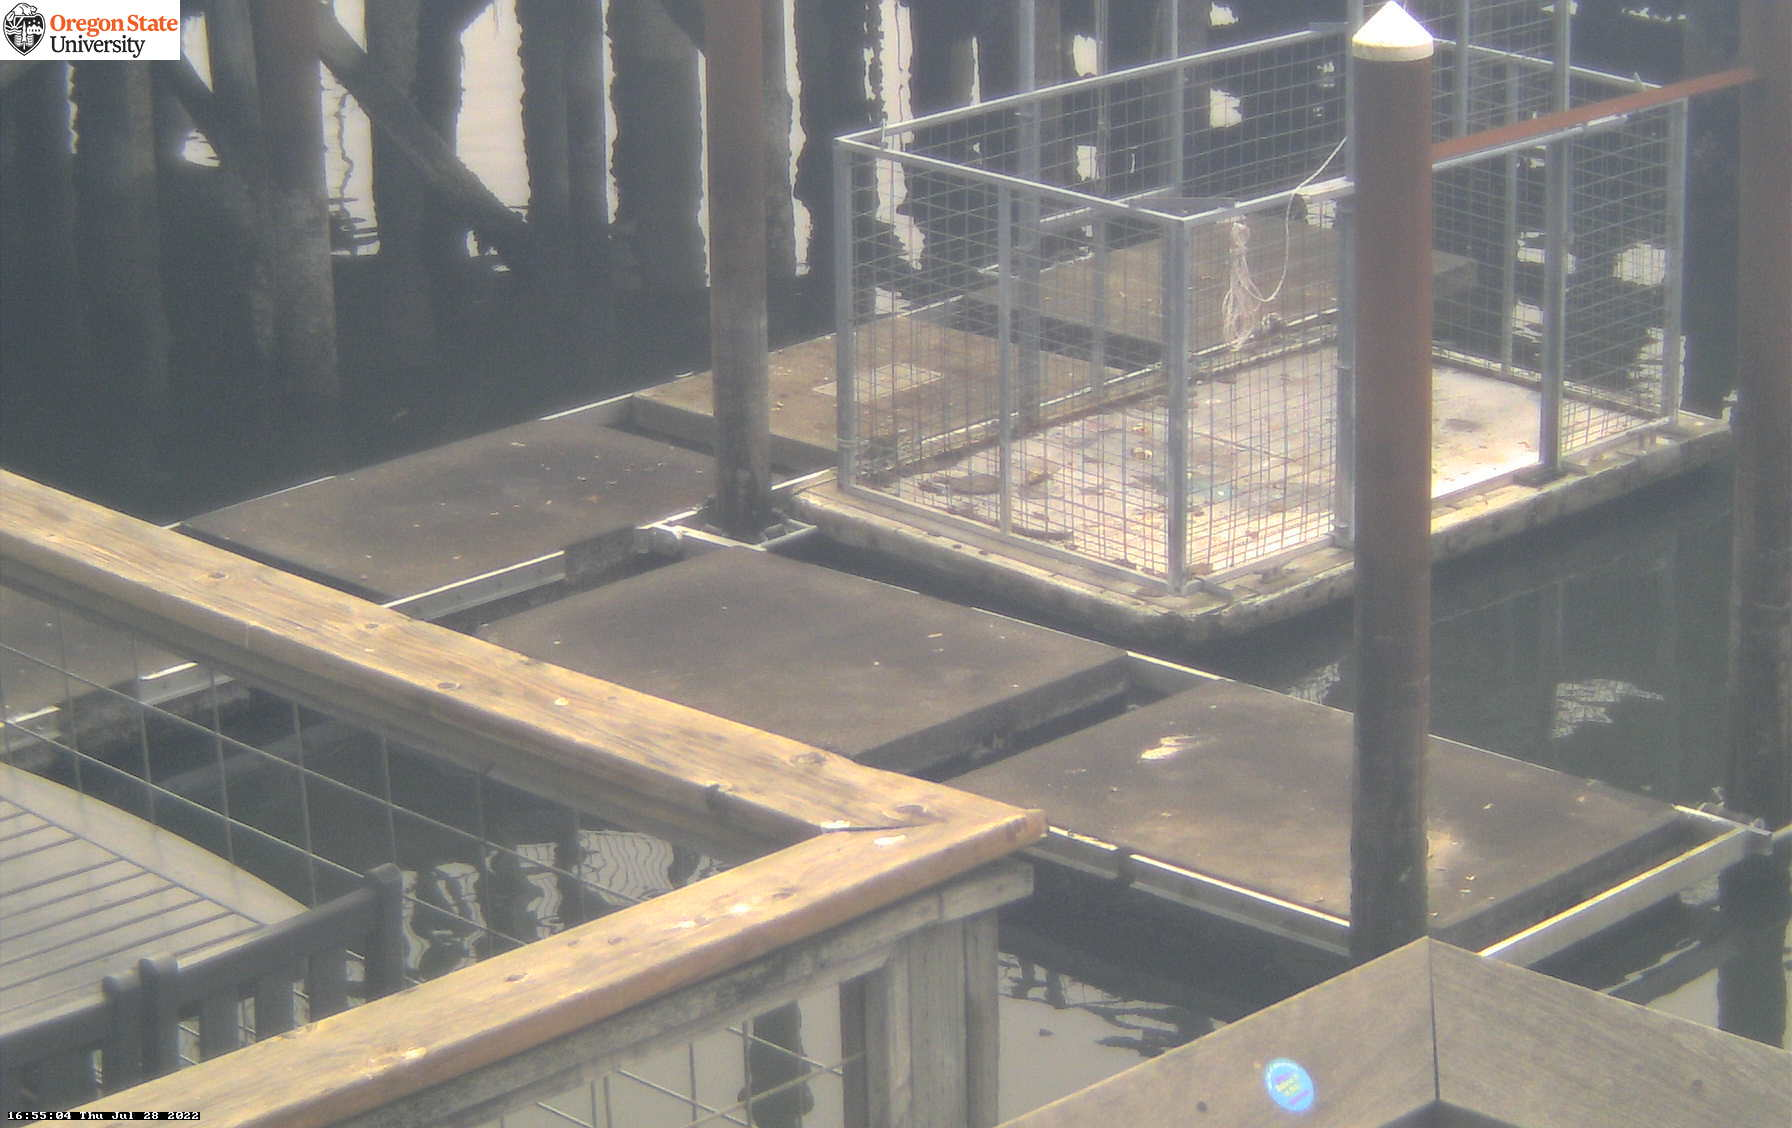 Newport Sea Lions Webcam